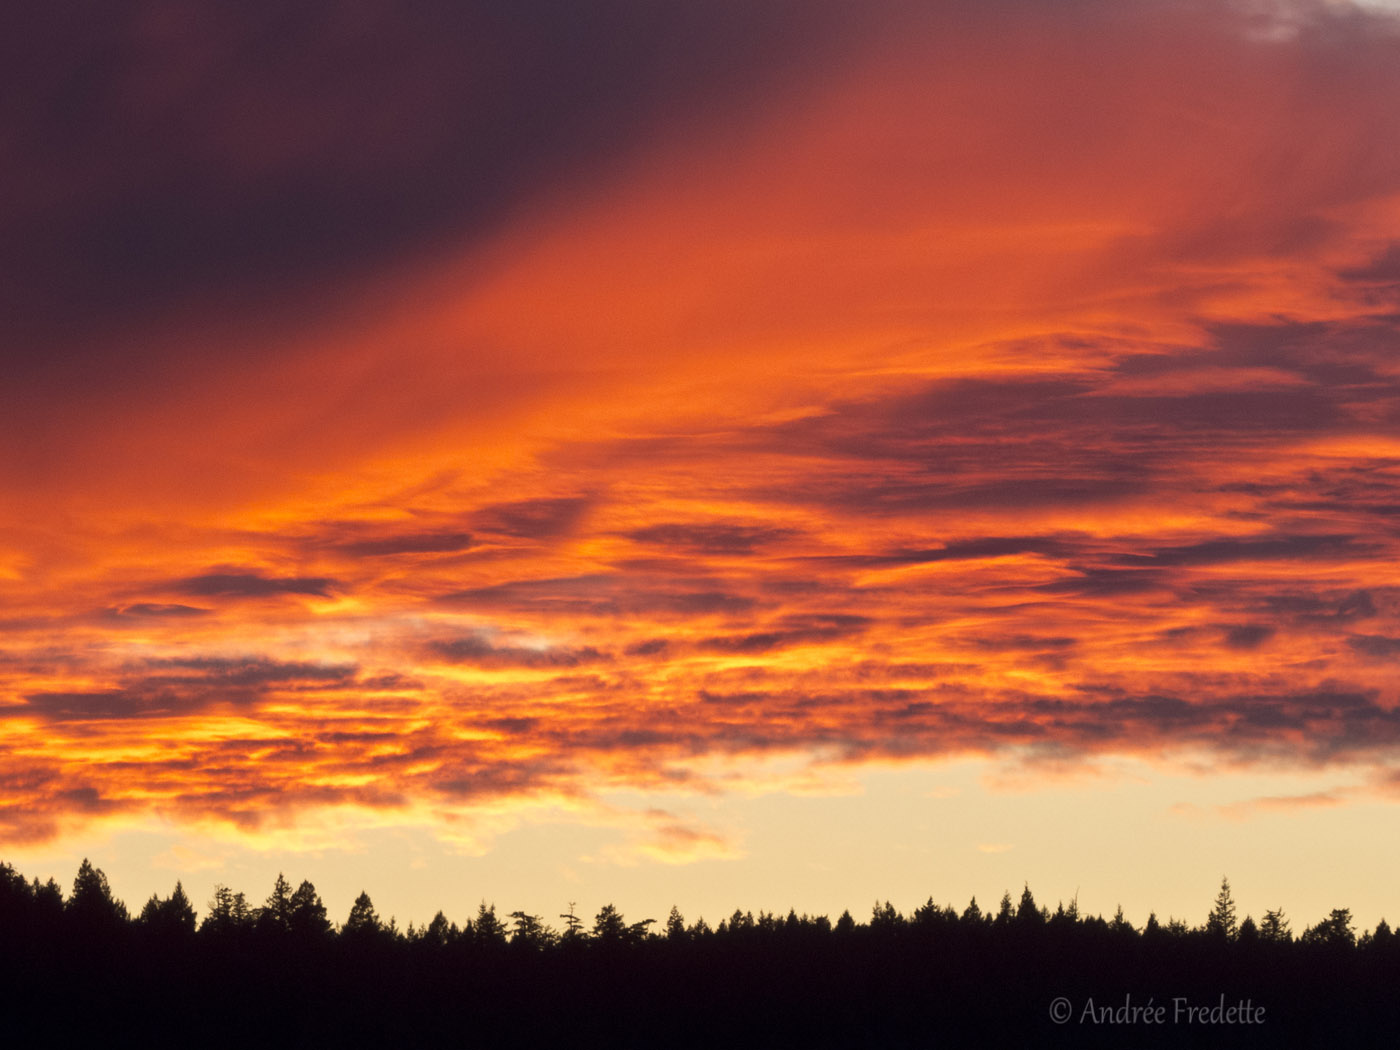 Sunset magic over Pender Island forest. Photo by Andrée Fredette